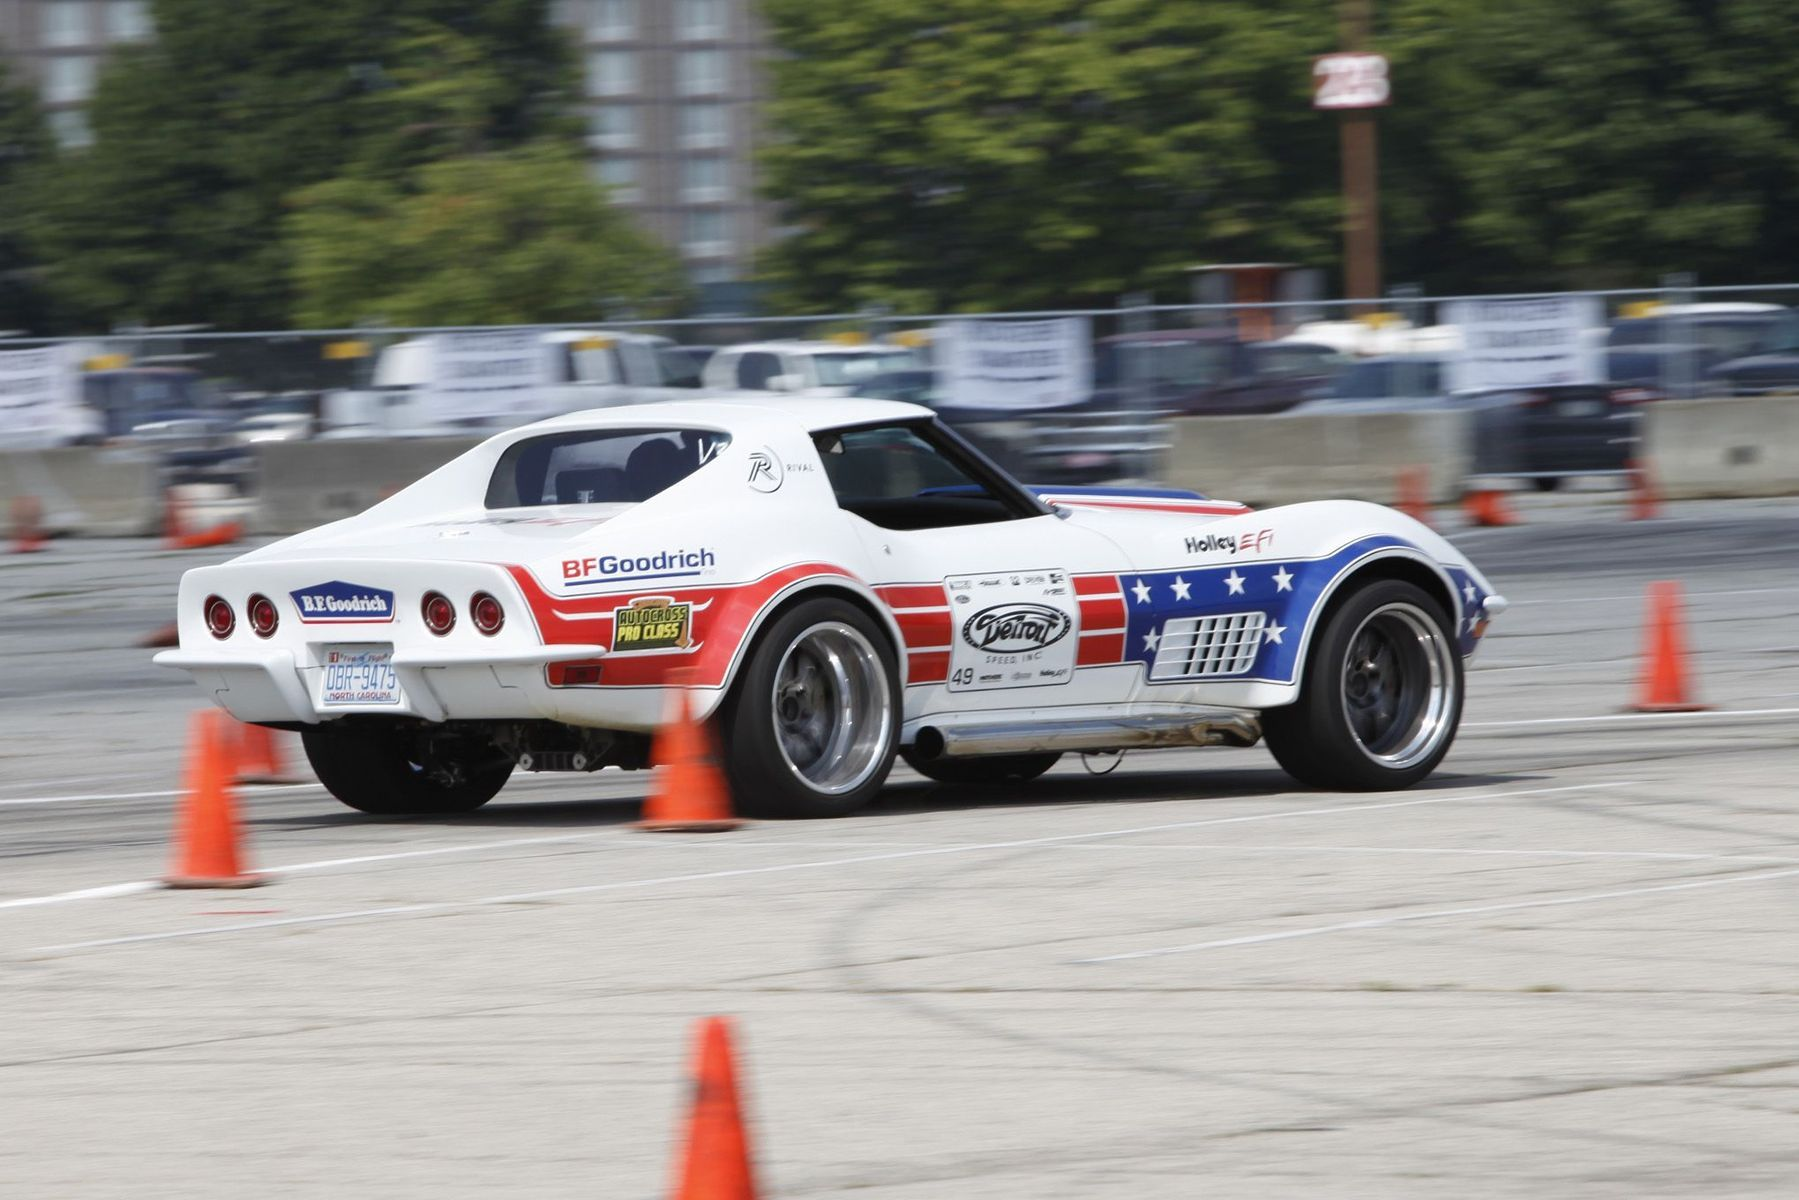 1972 Chevrolet Corvette Stingray | Ryan Mathews Wins NSRA Nationals Autocross in the Detroit Speed C3 Corvette on Forgeline GA3 Wheels